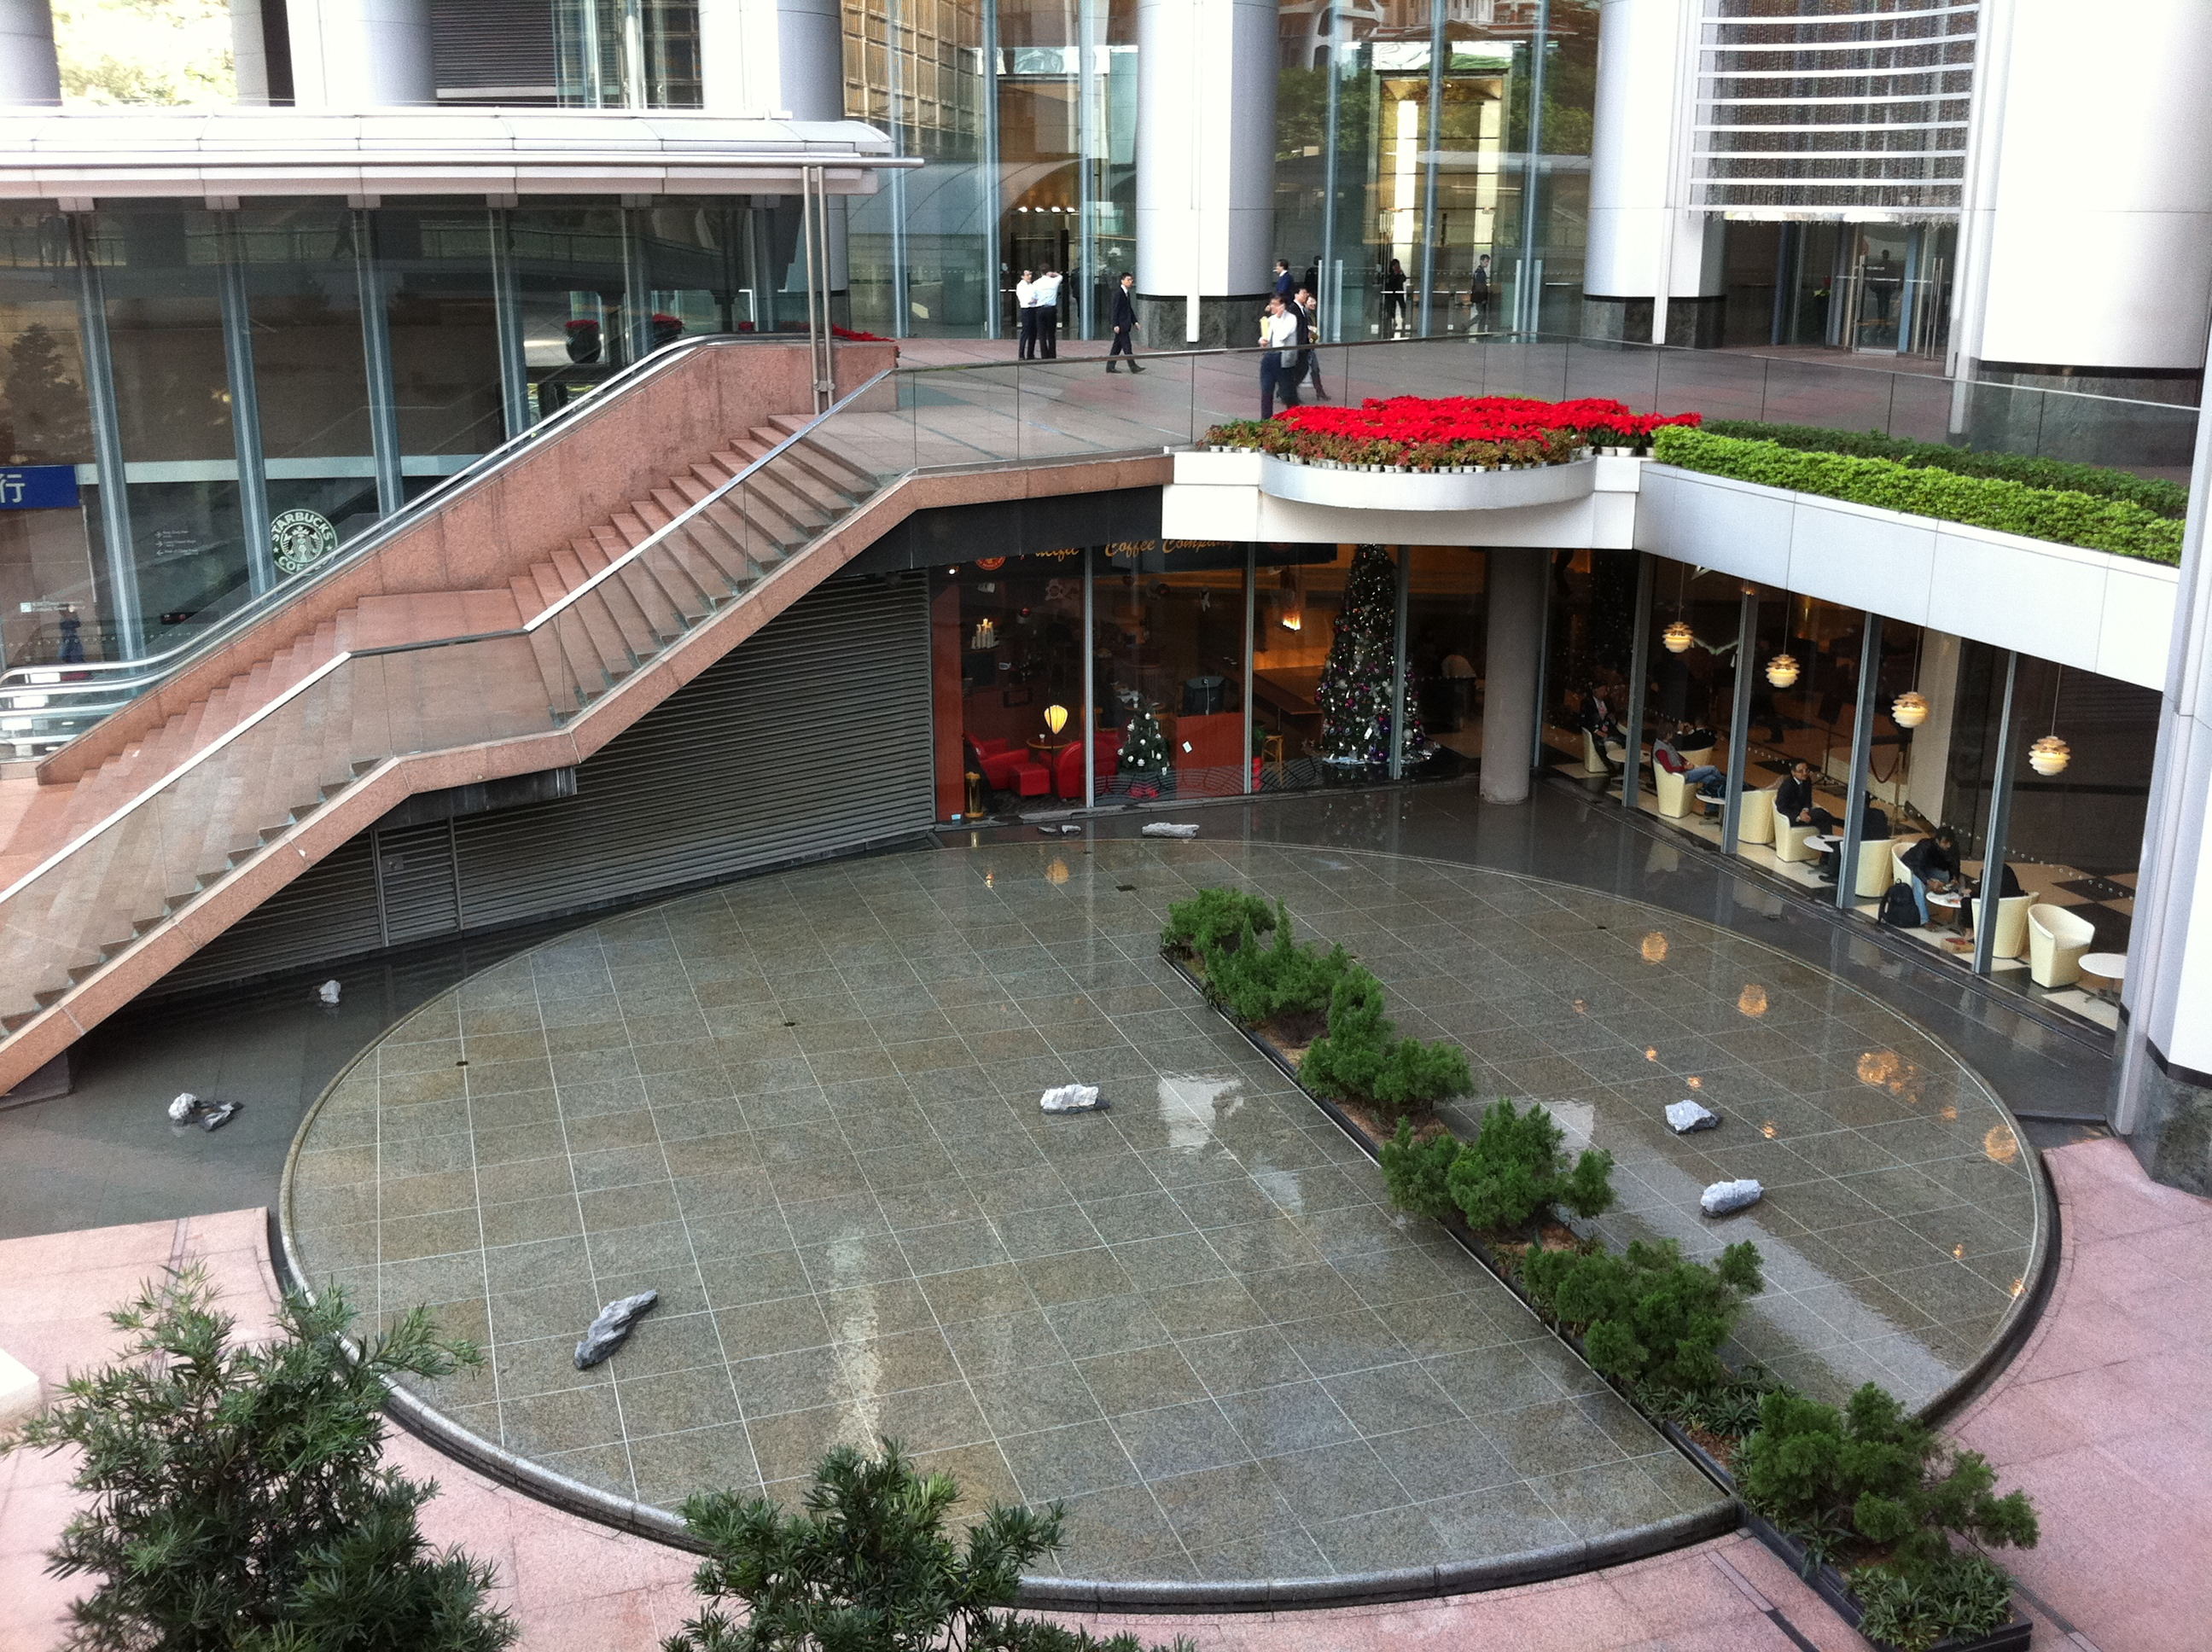 File:HK Central Citibank Plaza Terrace Stairs N Water Pool At Garden Road  Dec